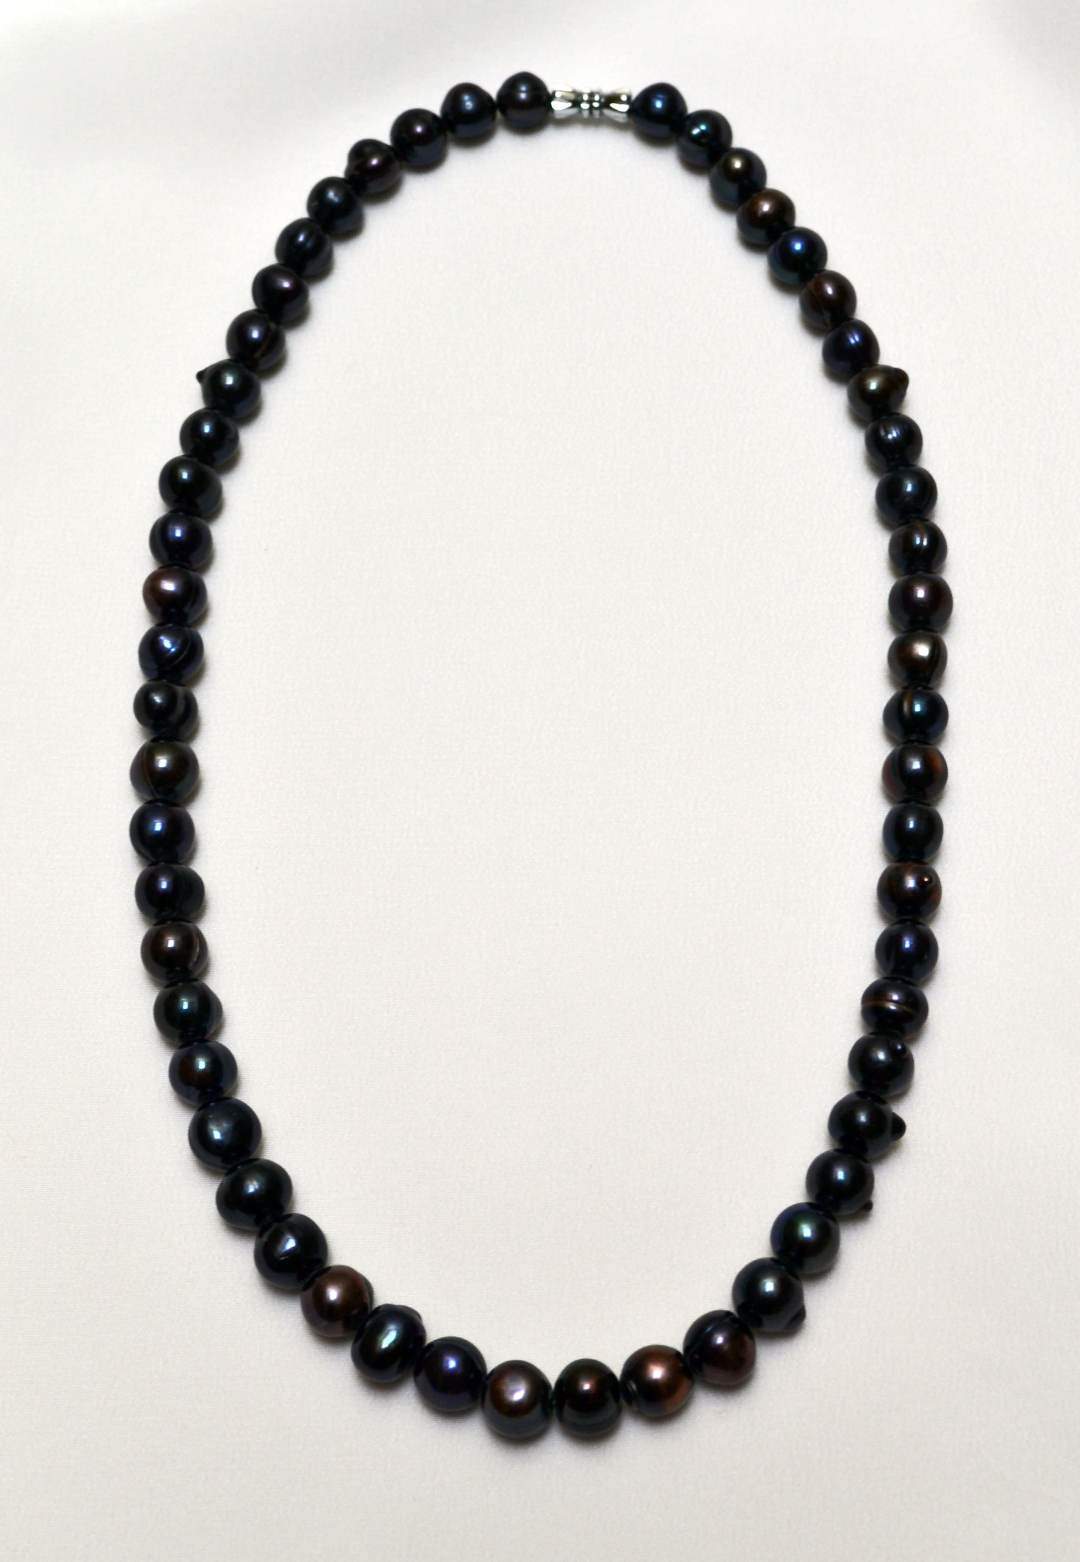 A string of black pearls from Ha Long Bay in Vietnam